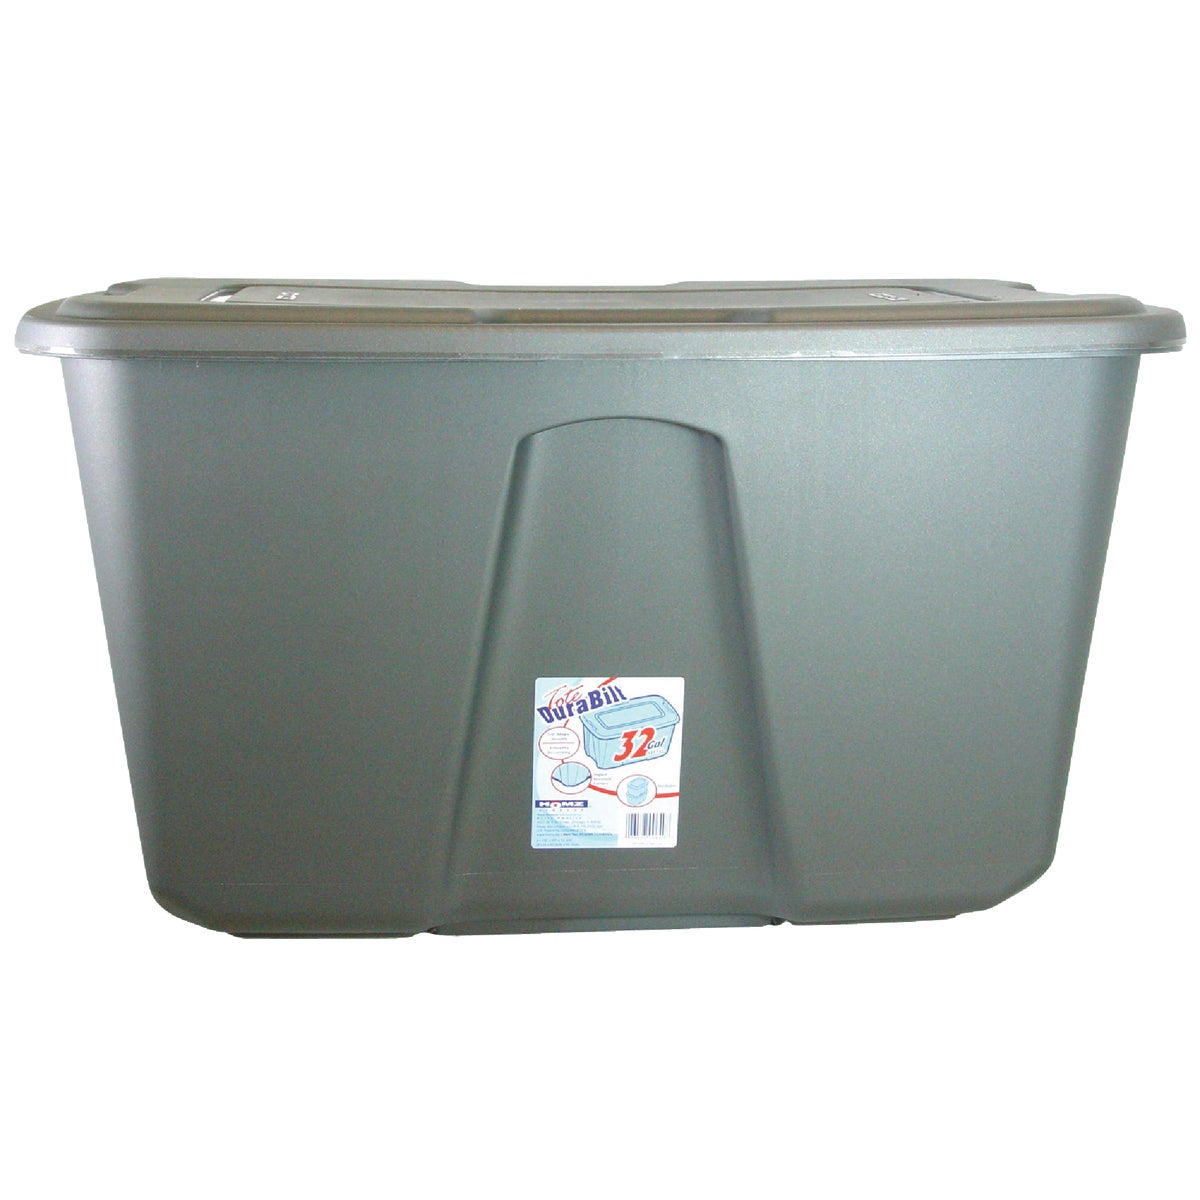 32 GALLON TOTE BOX